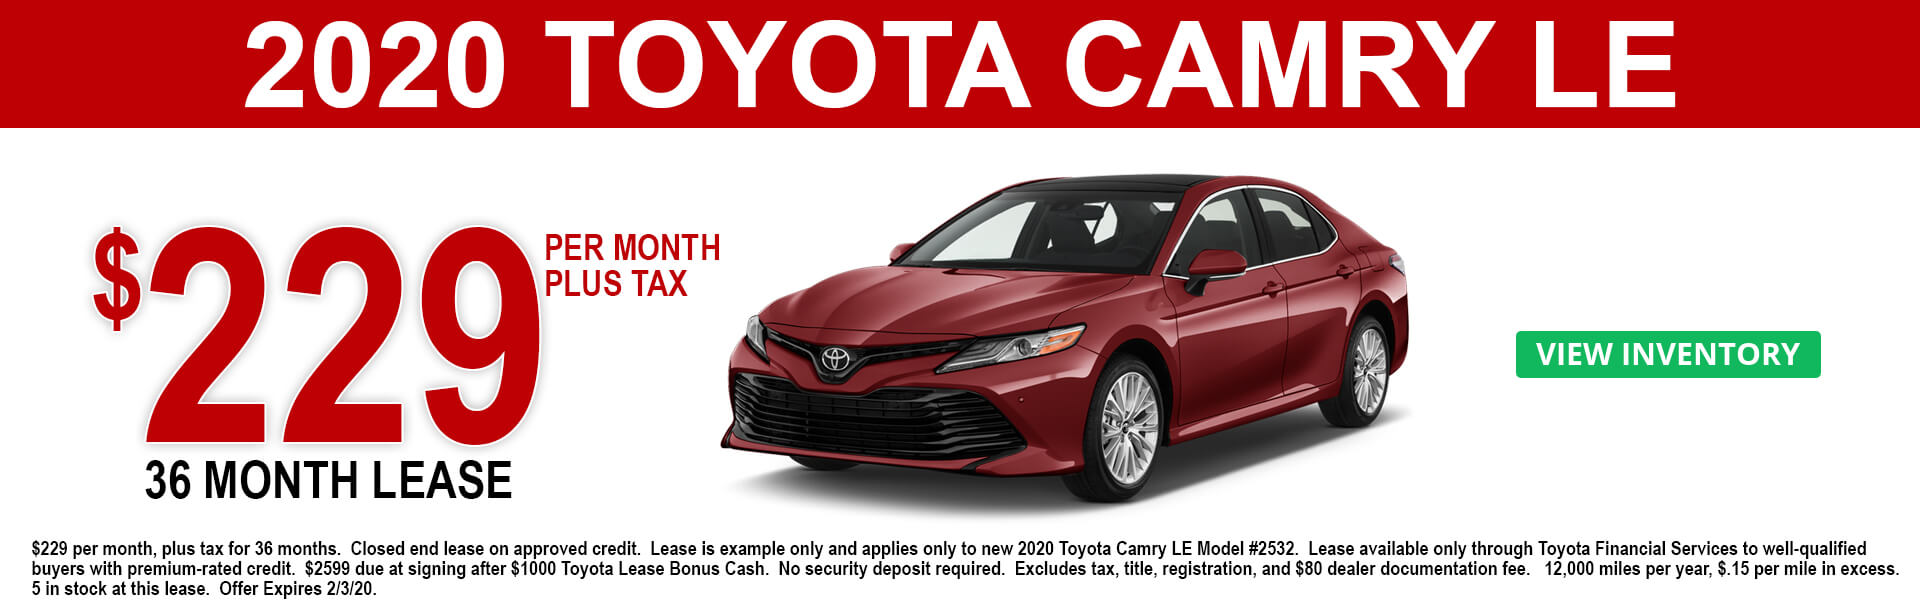 2020 Toyota Camry LE Lease Offer $229 per month 36 months